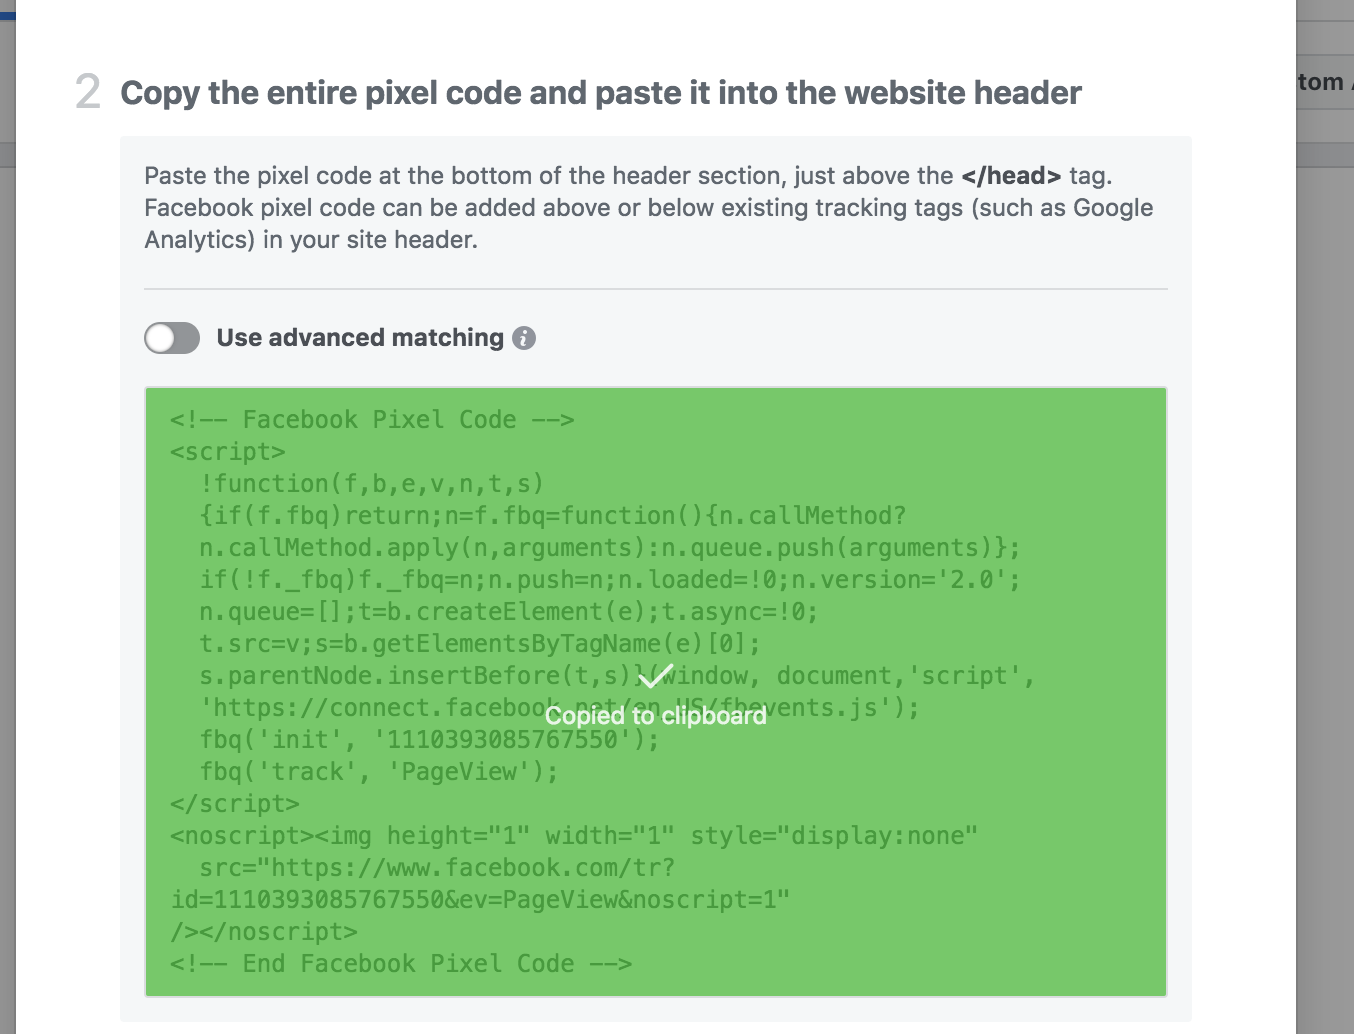 Copy the entire pixel code and paste it into the website header